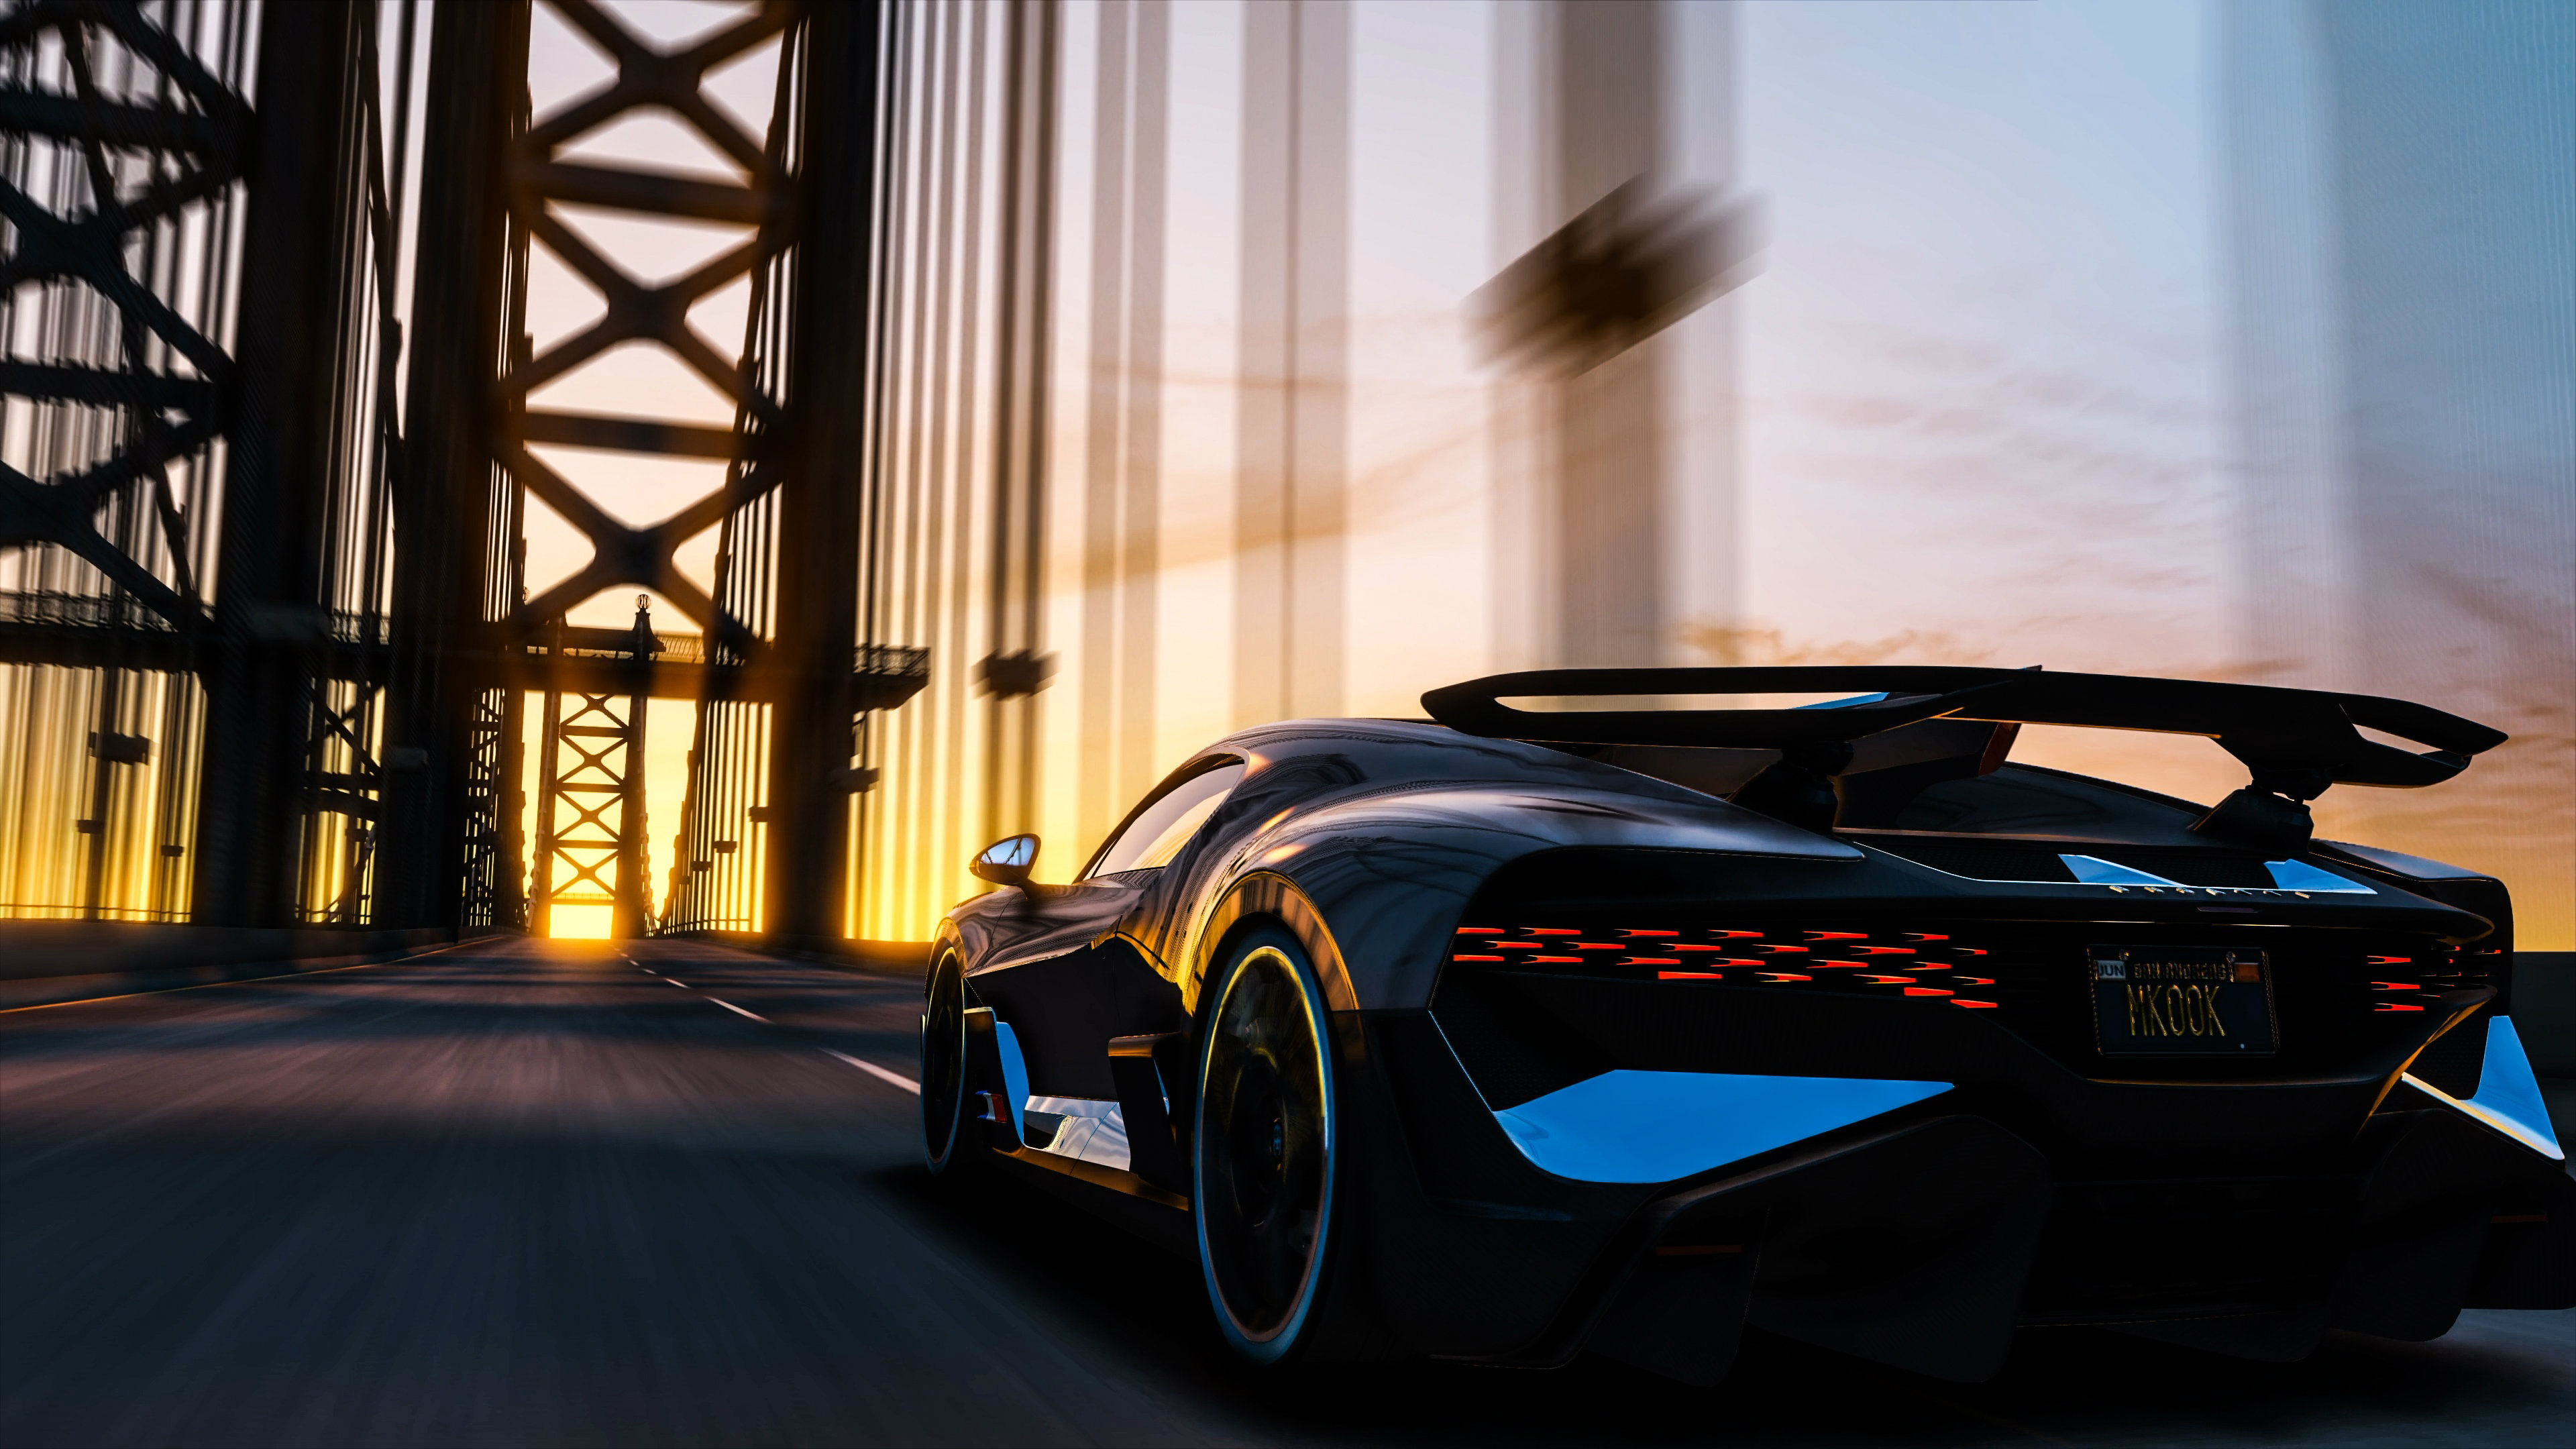 bugatti divo bridge 4k 1541968972 - Bugatti Divo Bridge 4k - hd-wallpapers, gta 5 wallpapers, cars wallpapers, bugatti wallpapers, bugatti divo wallpapers, 4k-wallpapers, 2018 cars wallpapers